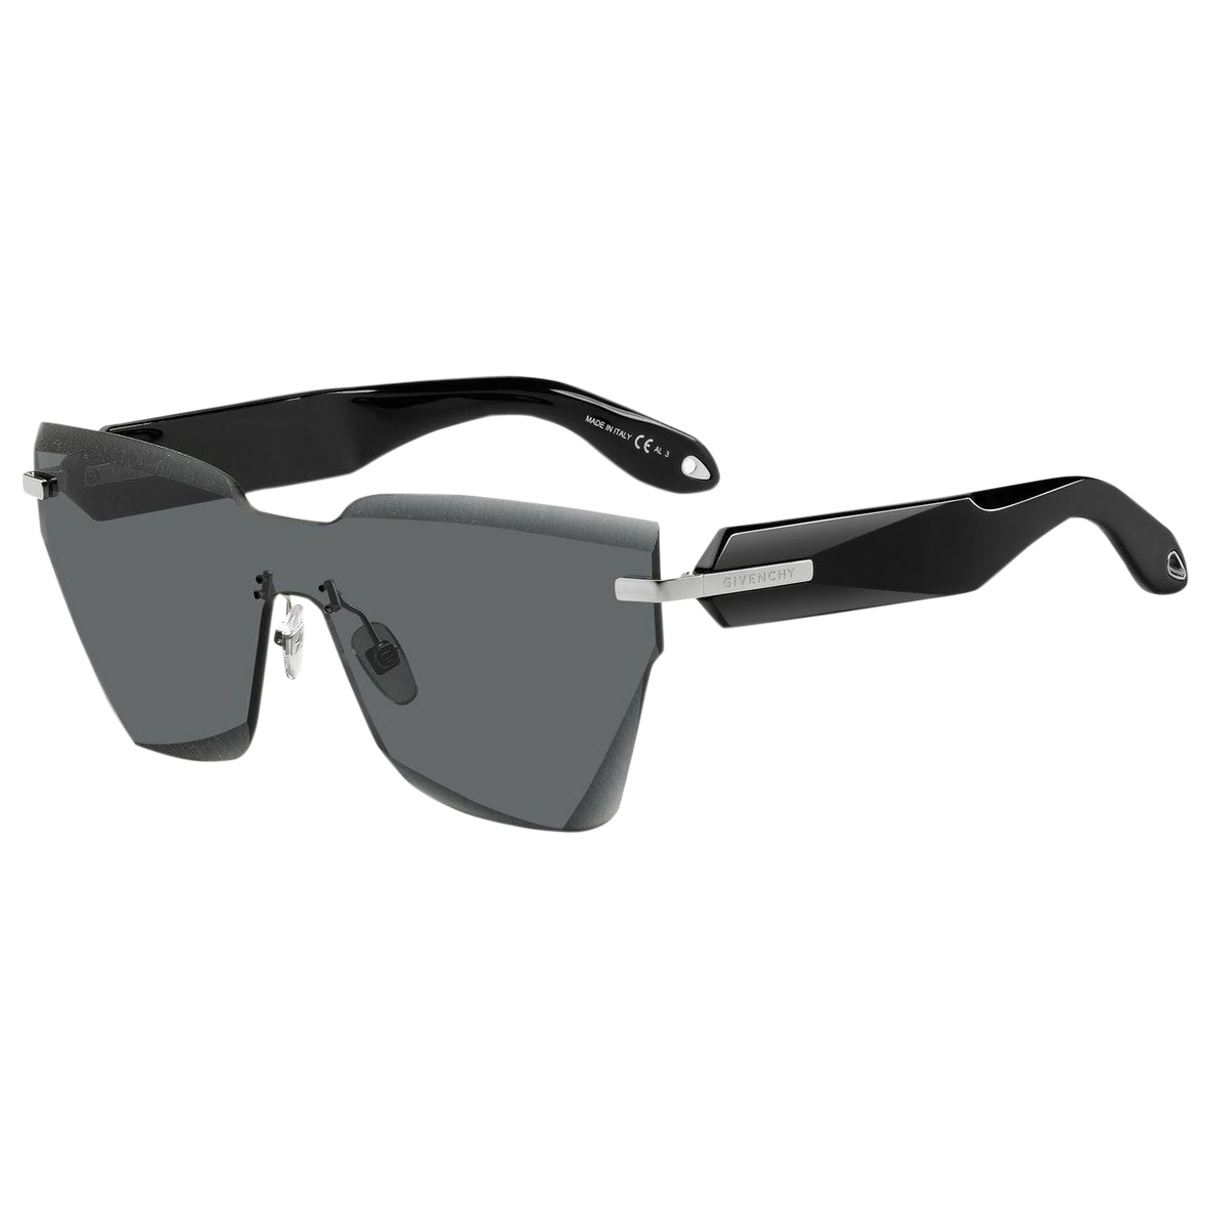 Givenchy \N Black Sunglasses for Women \N